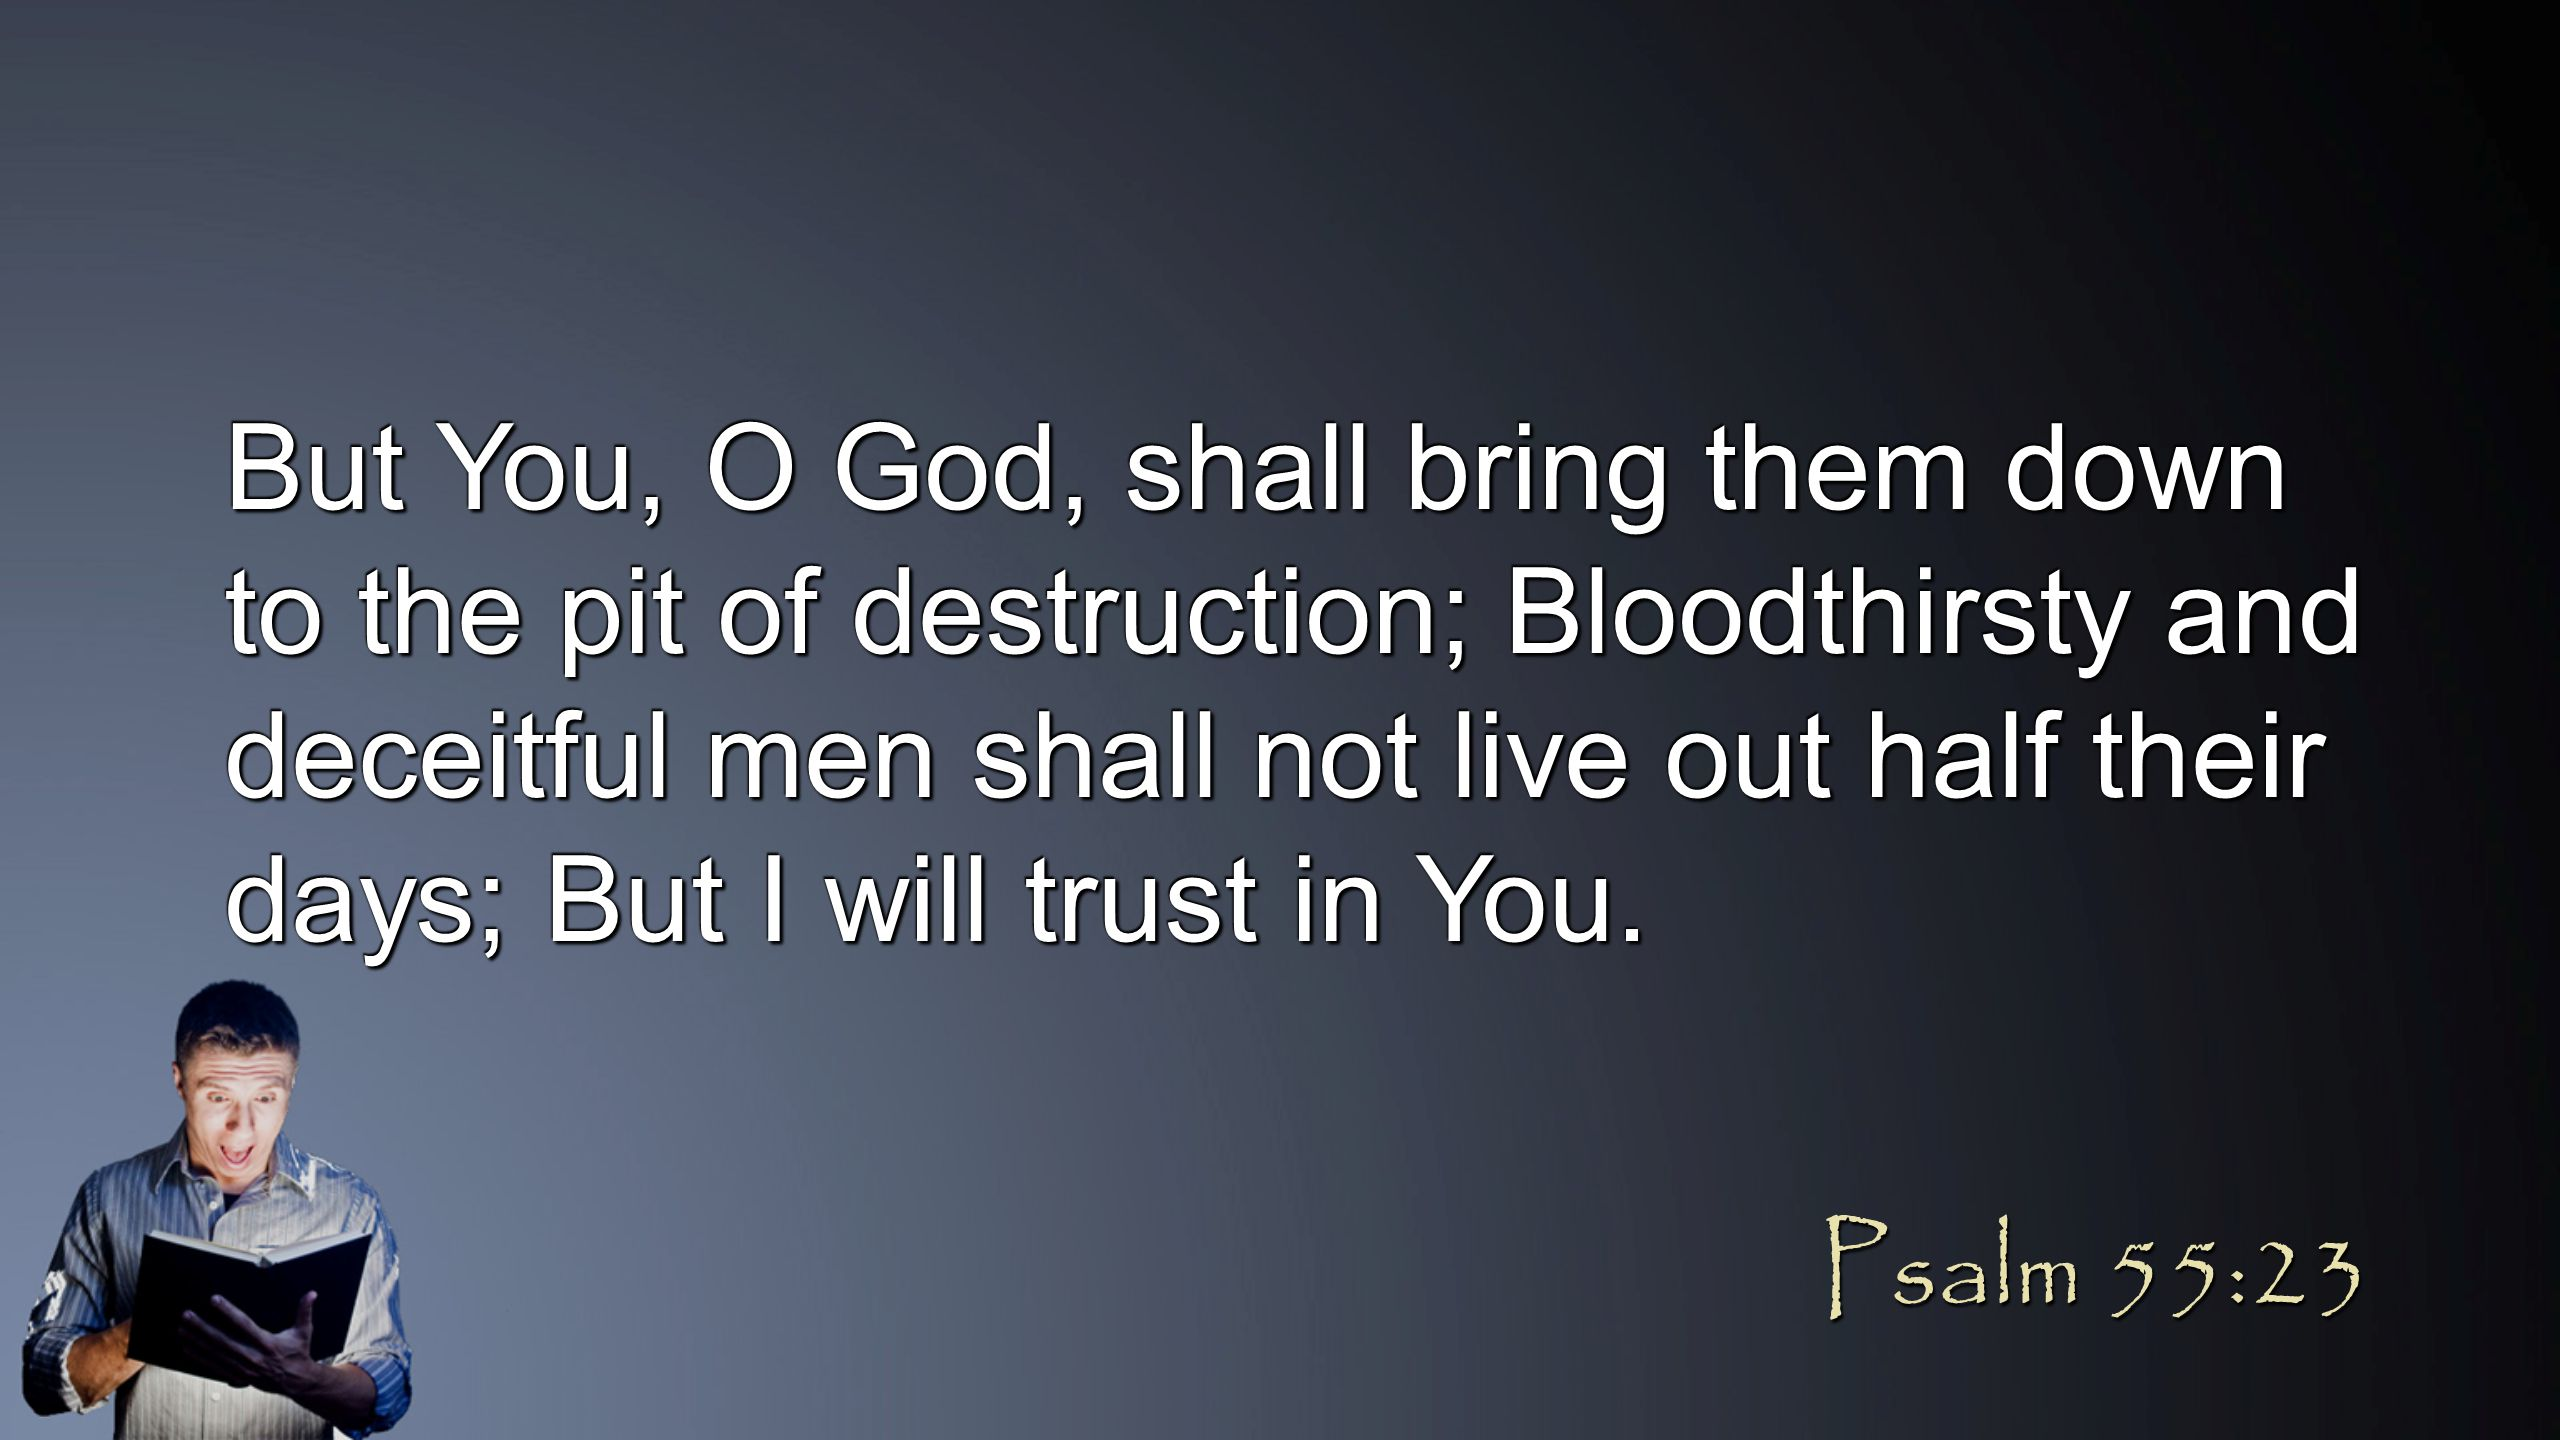 But You, O God, shall bring them down to the pit of destruction; Bloodthirsty and deceitful men shall not live out half their days; But I will trust in You.